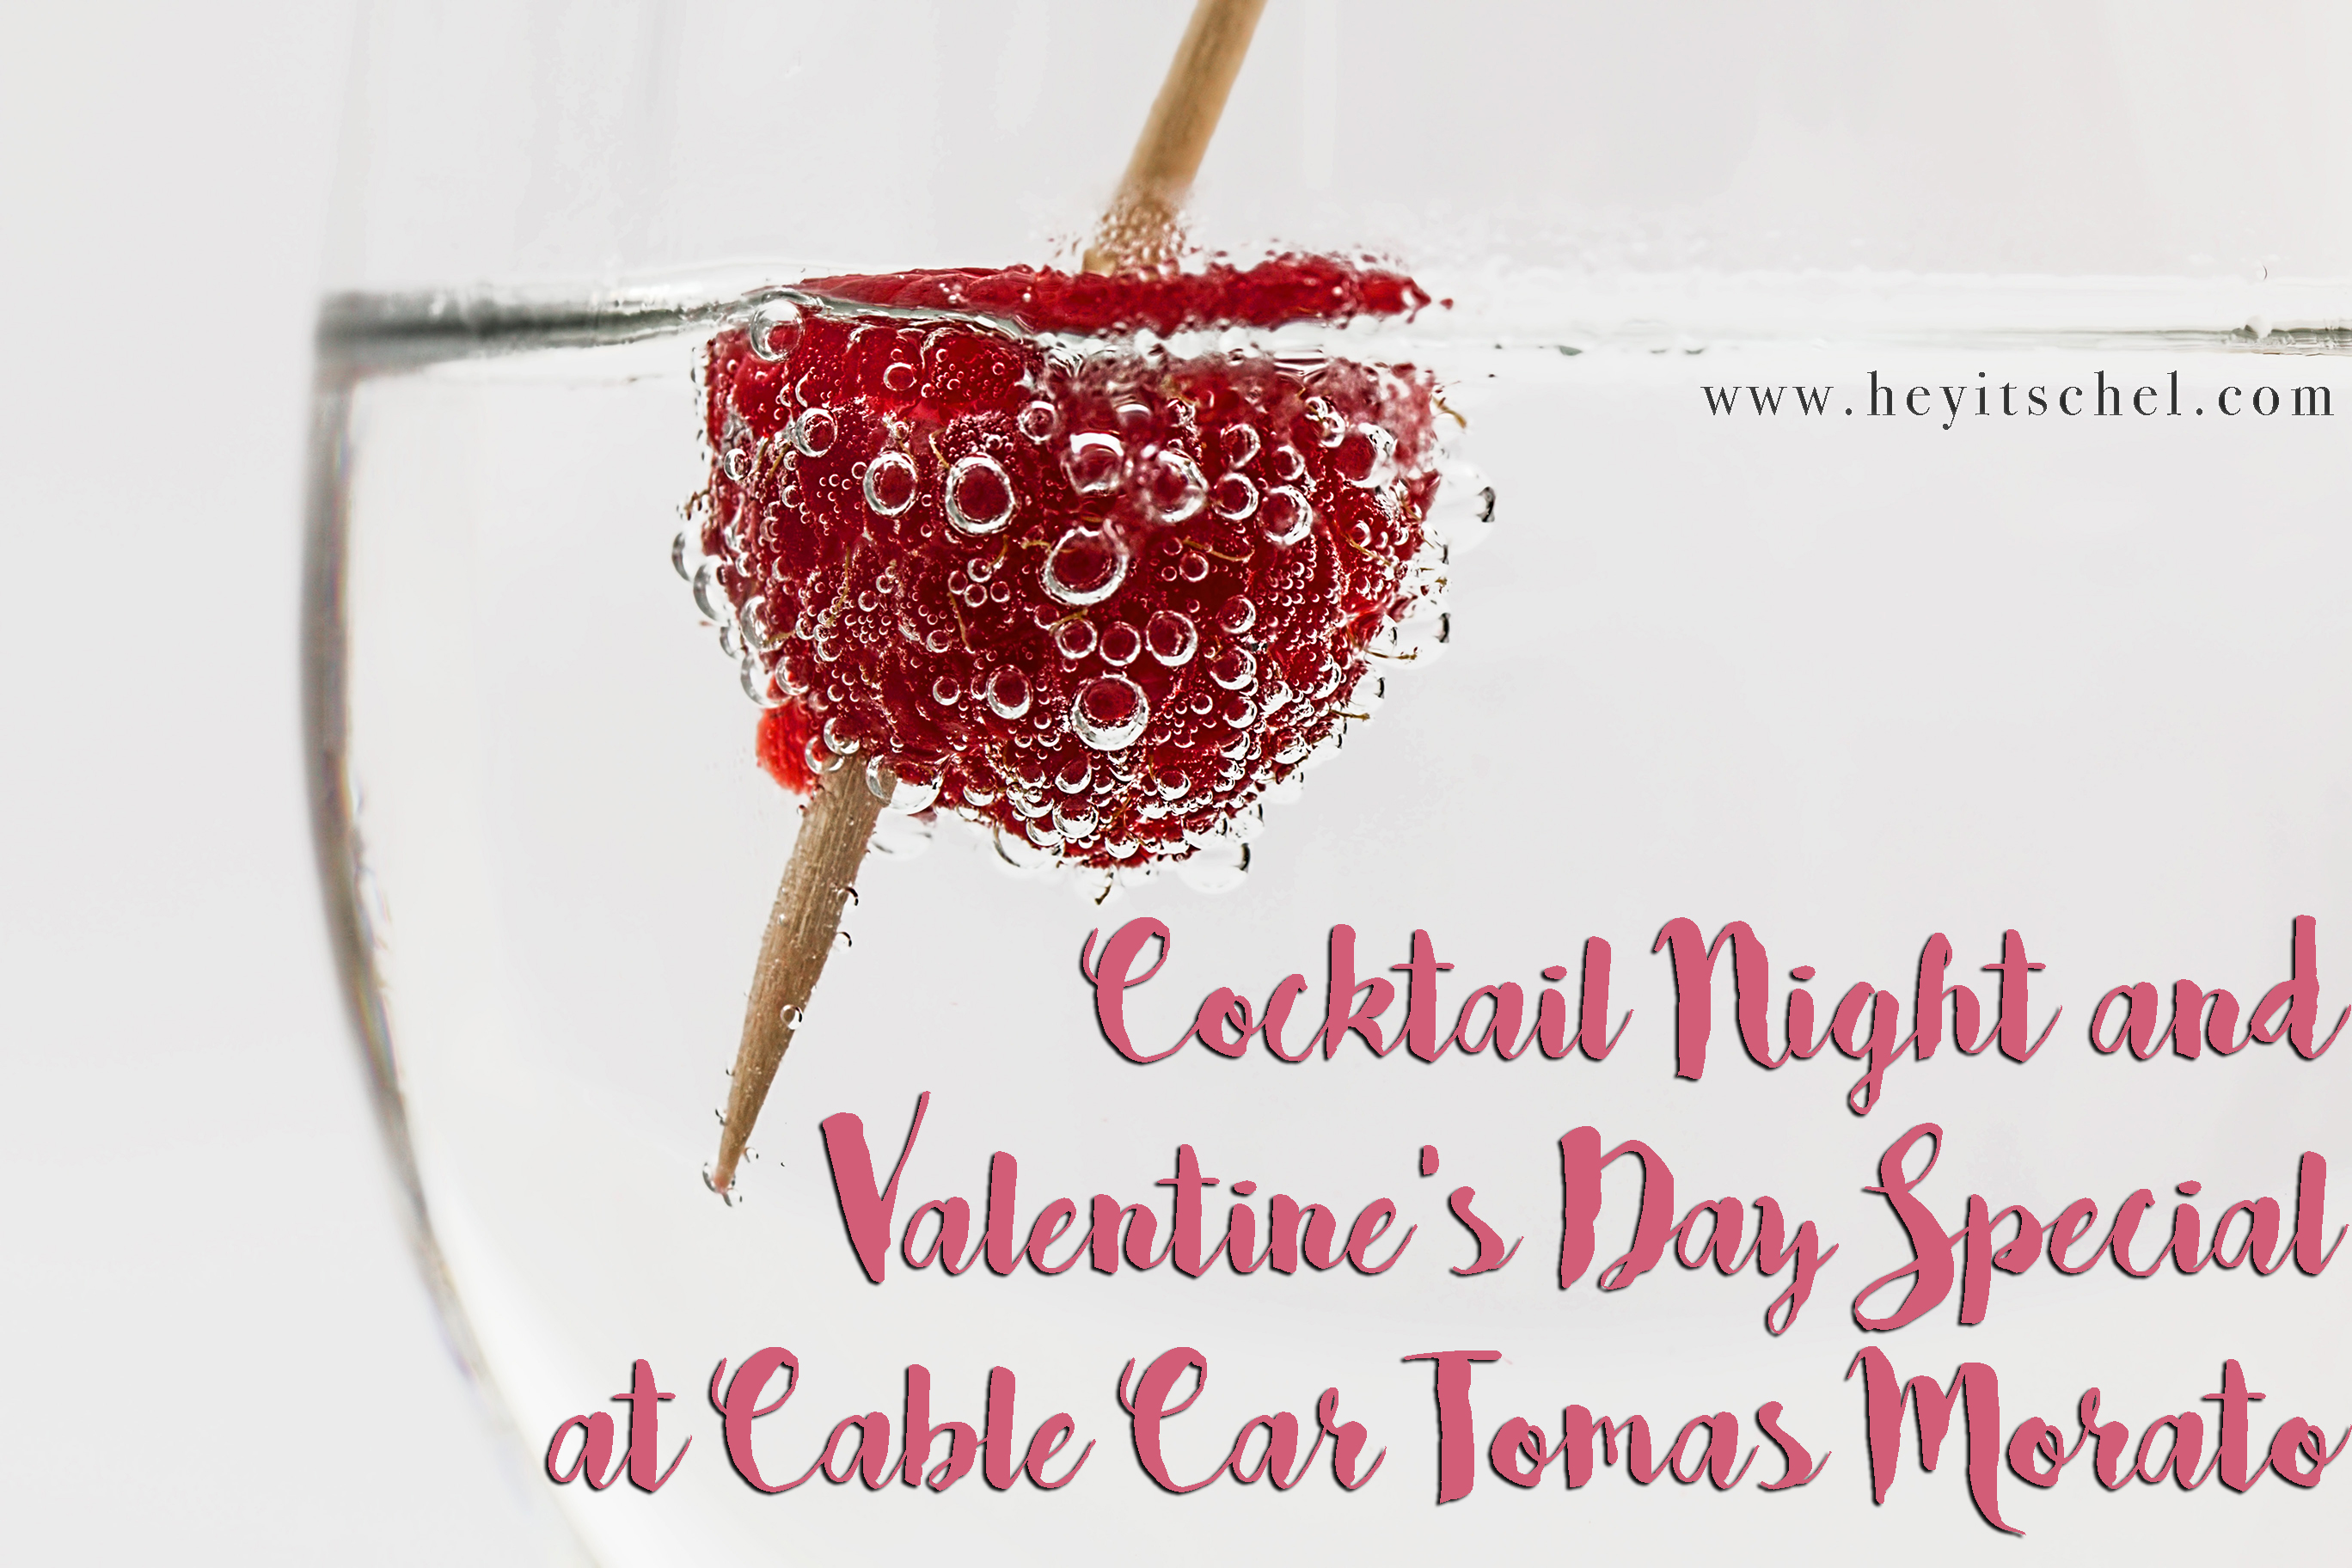 Cocktail Night and Valentine's Day Special at Cable Car Tomas Morato